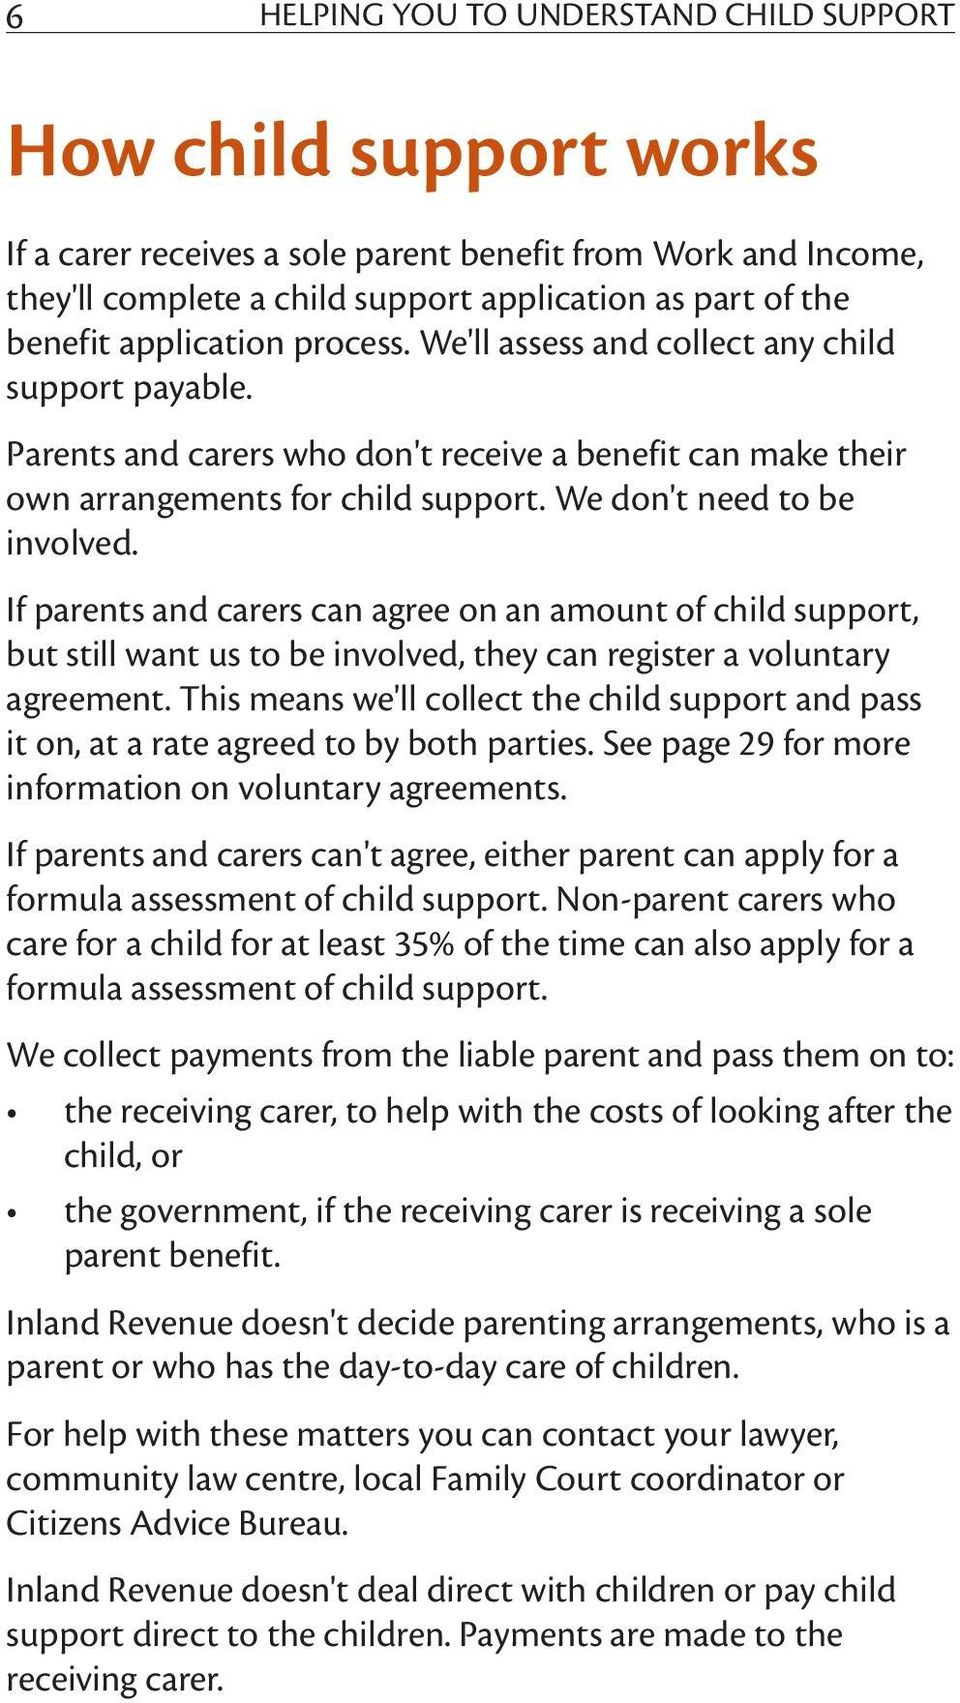 If parents and carers can agree on an amount of child support, but still want us to be involved, they can register a voluntary agreement.